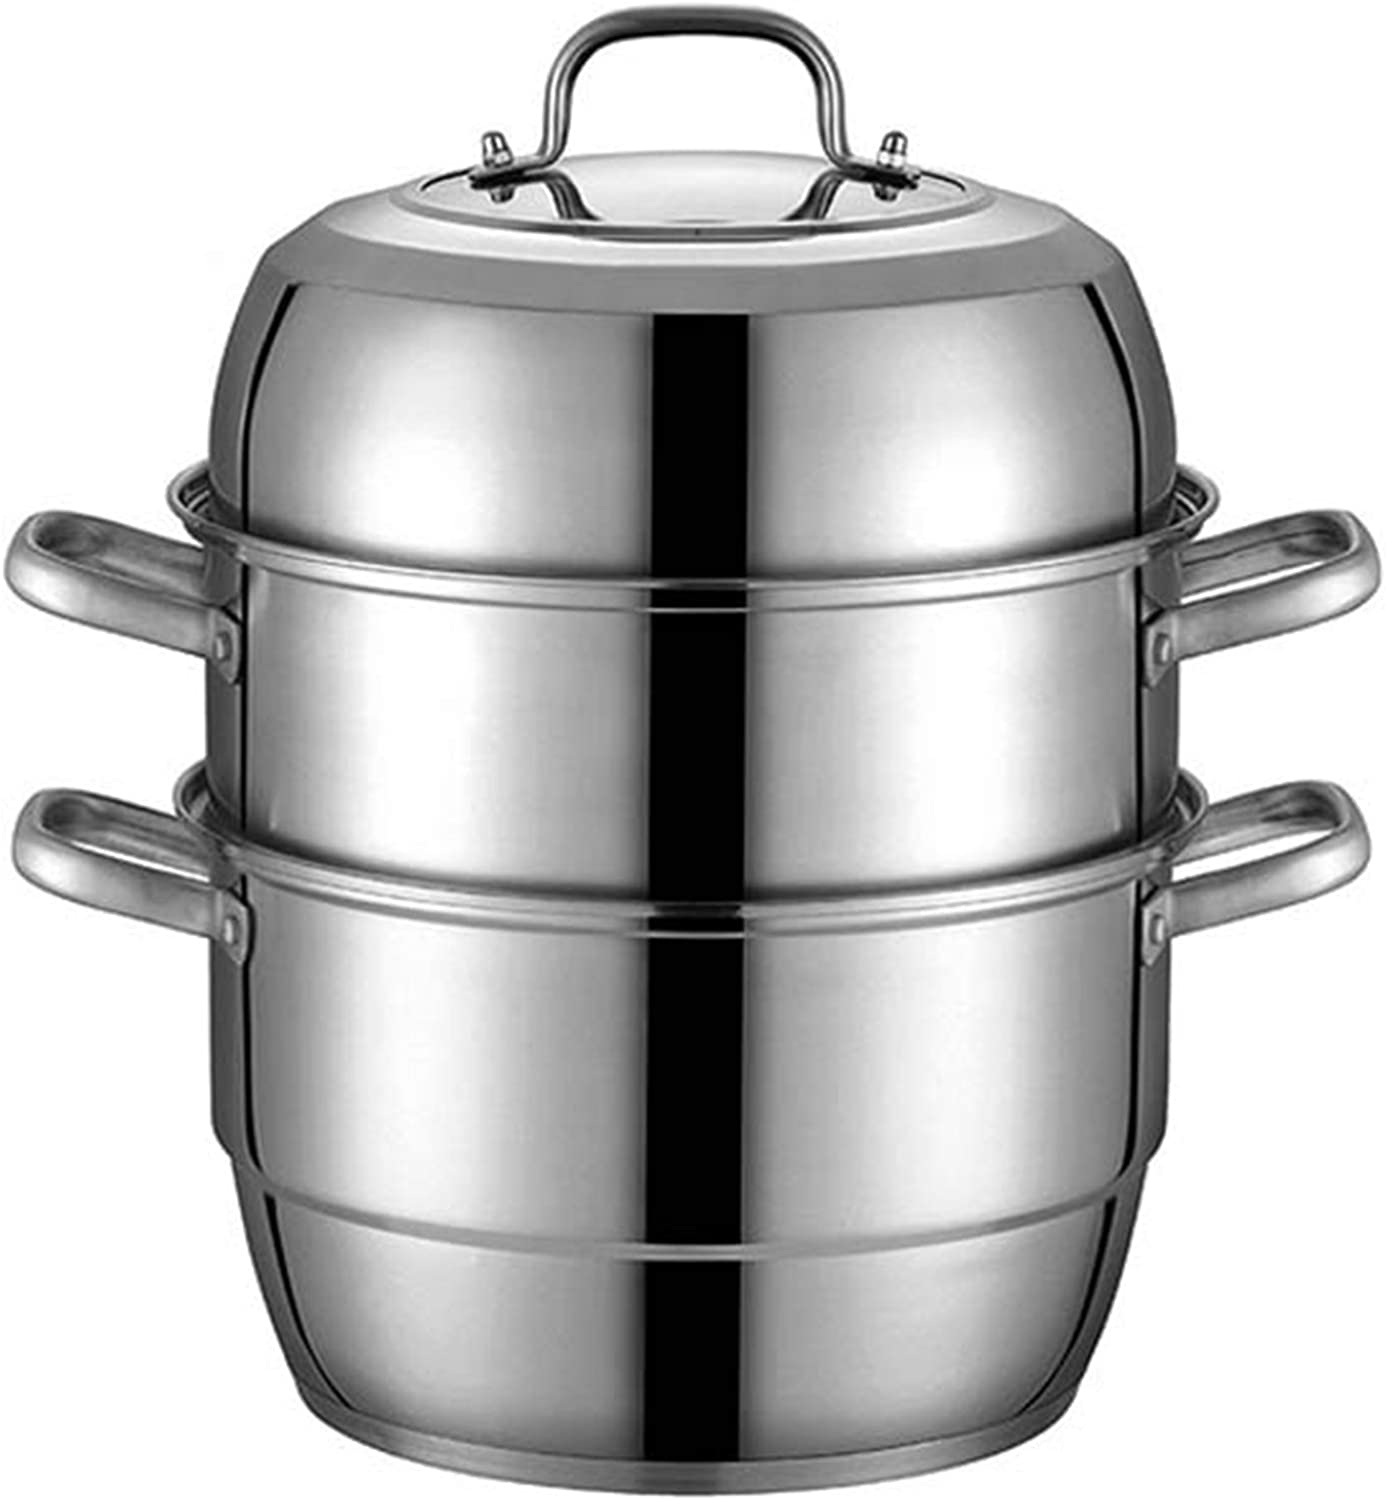 XH&XH Stainless Steel Steamer Pot Steamer Food Steamer Multi Layer Pot Steam Boiler with Transparent Lid for Kitchen Kitcken Three Layers 30cm